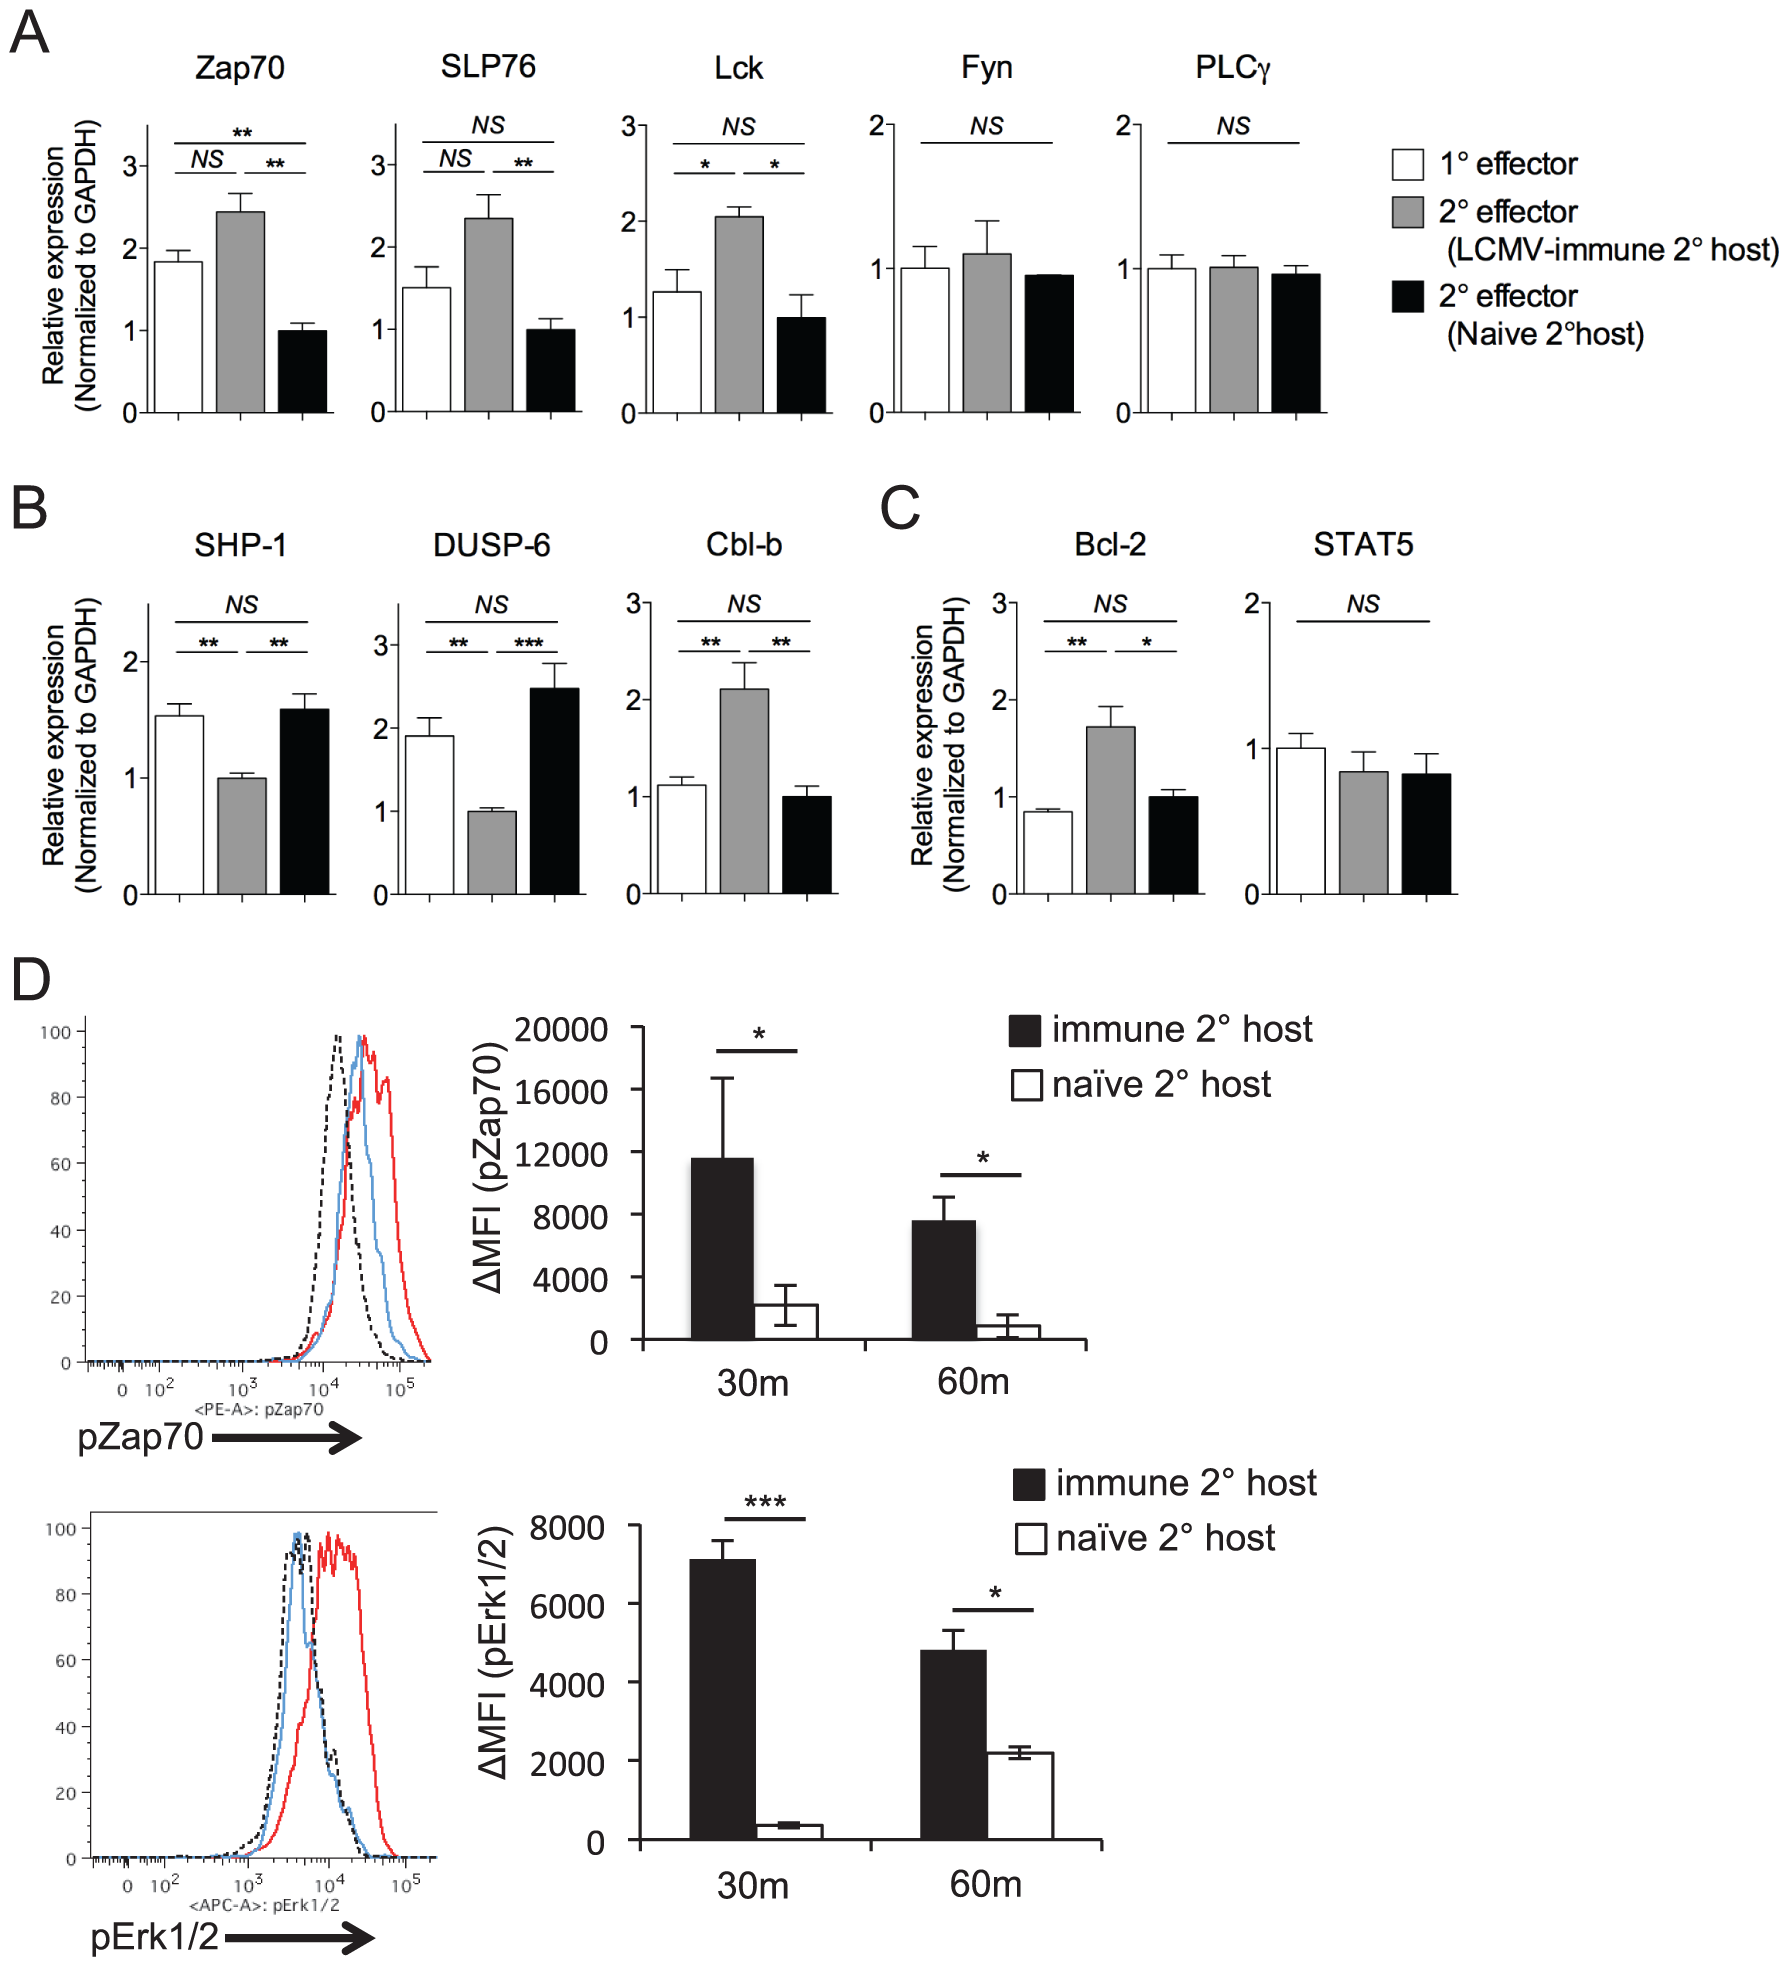 Maintenance of high functional avidity after secondary challenge is associated with enhanced expression of TCR signaling molecules.